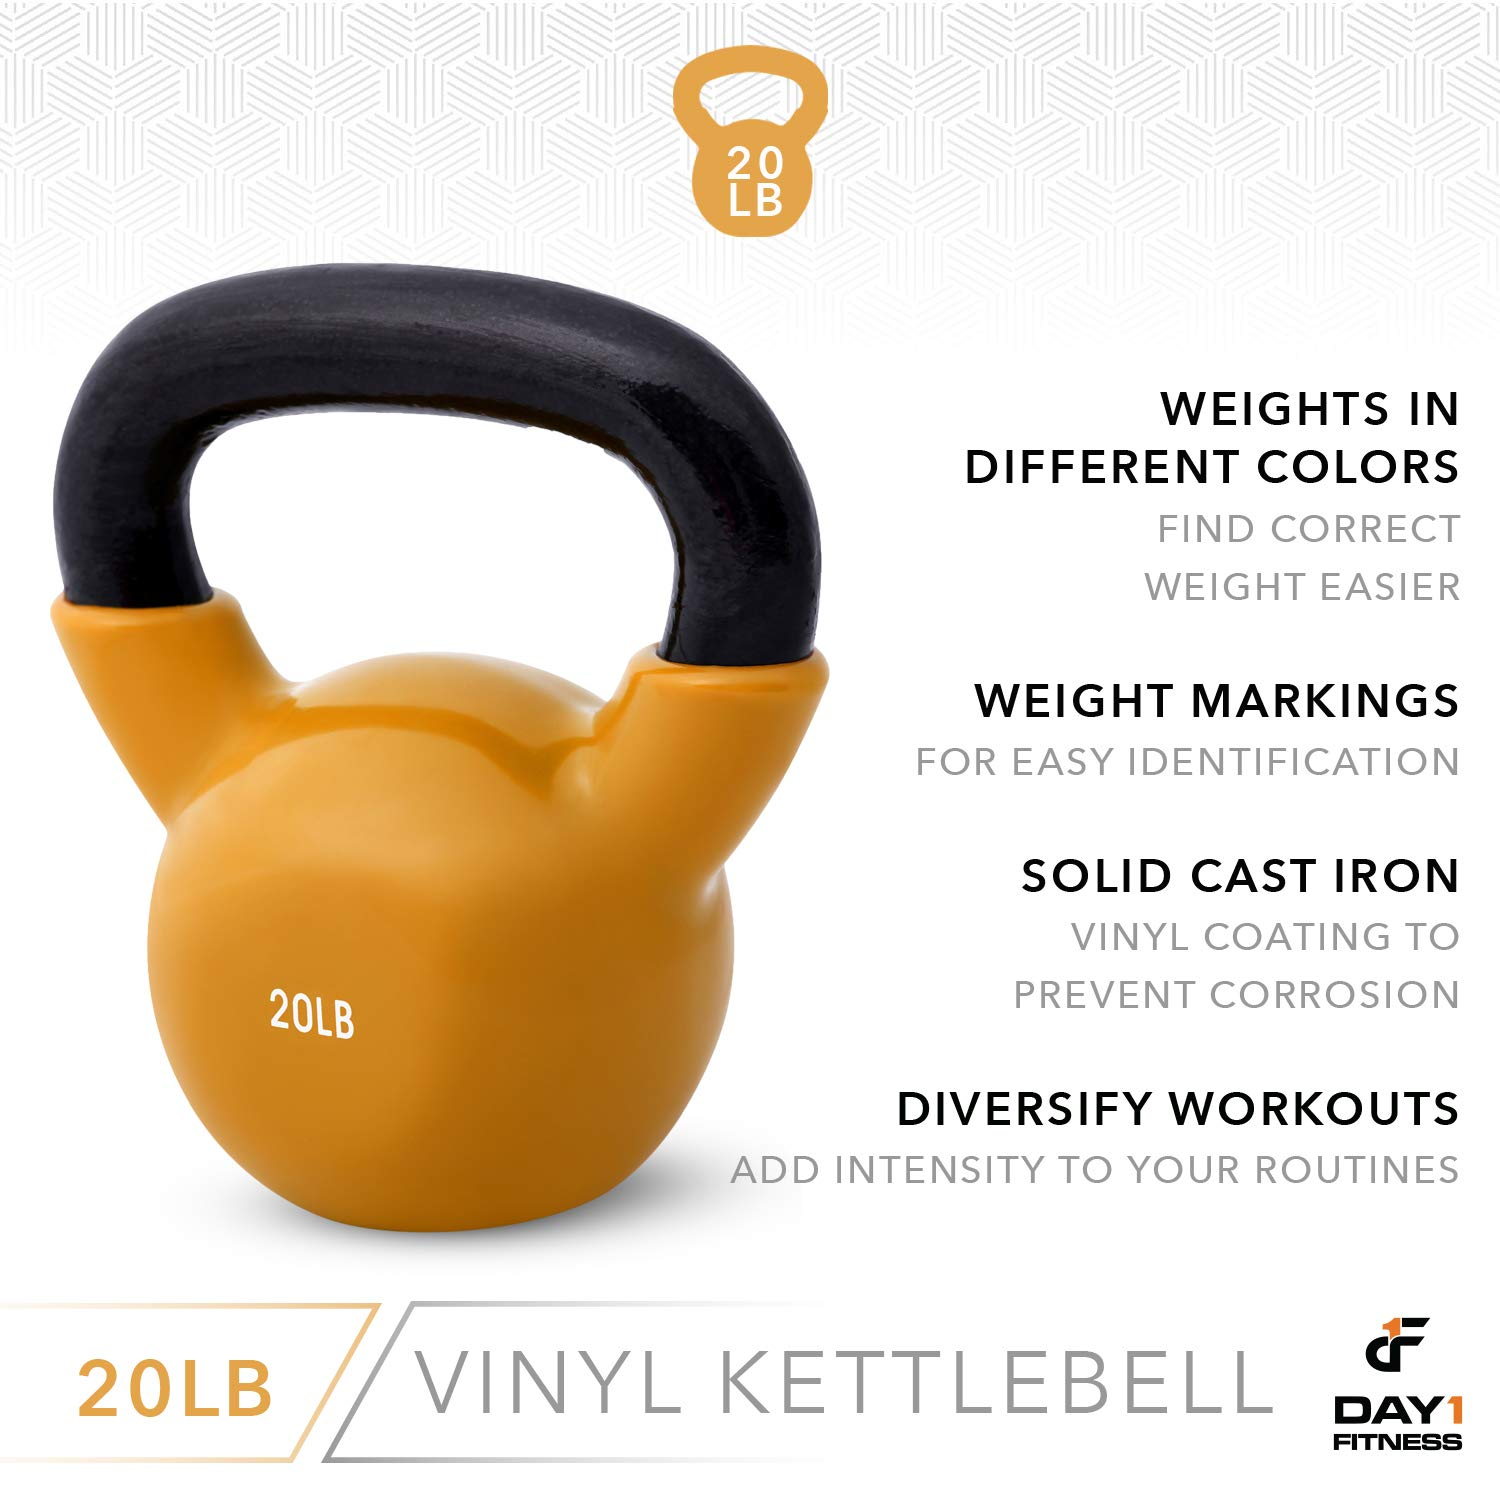 Day 1 Fitness Kettlebell Weights Vinyl Coated Iron 20 Pounds - Coated for Floor and Equipment Protection, Noise Reduction - Free Weights for Ballistic, Core, Weight Training by Day 1 Fitness (Image #5)